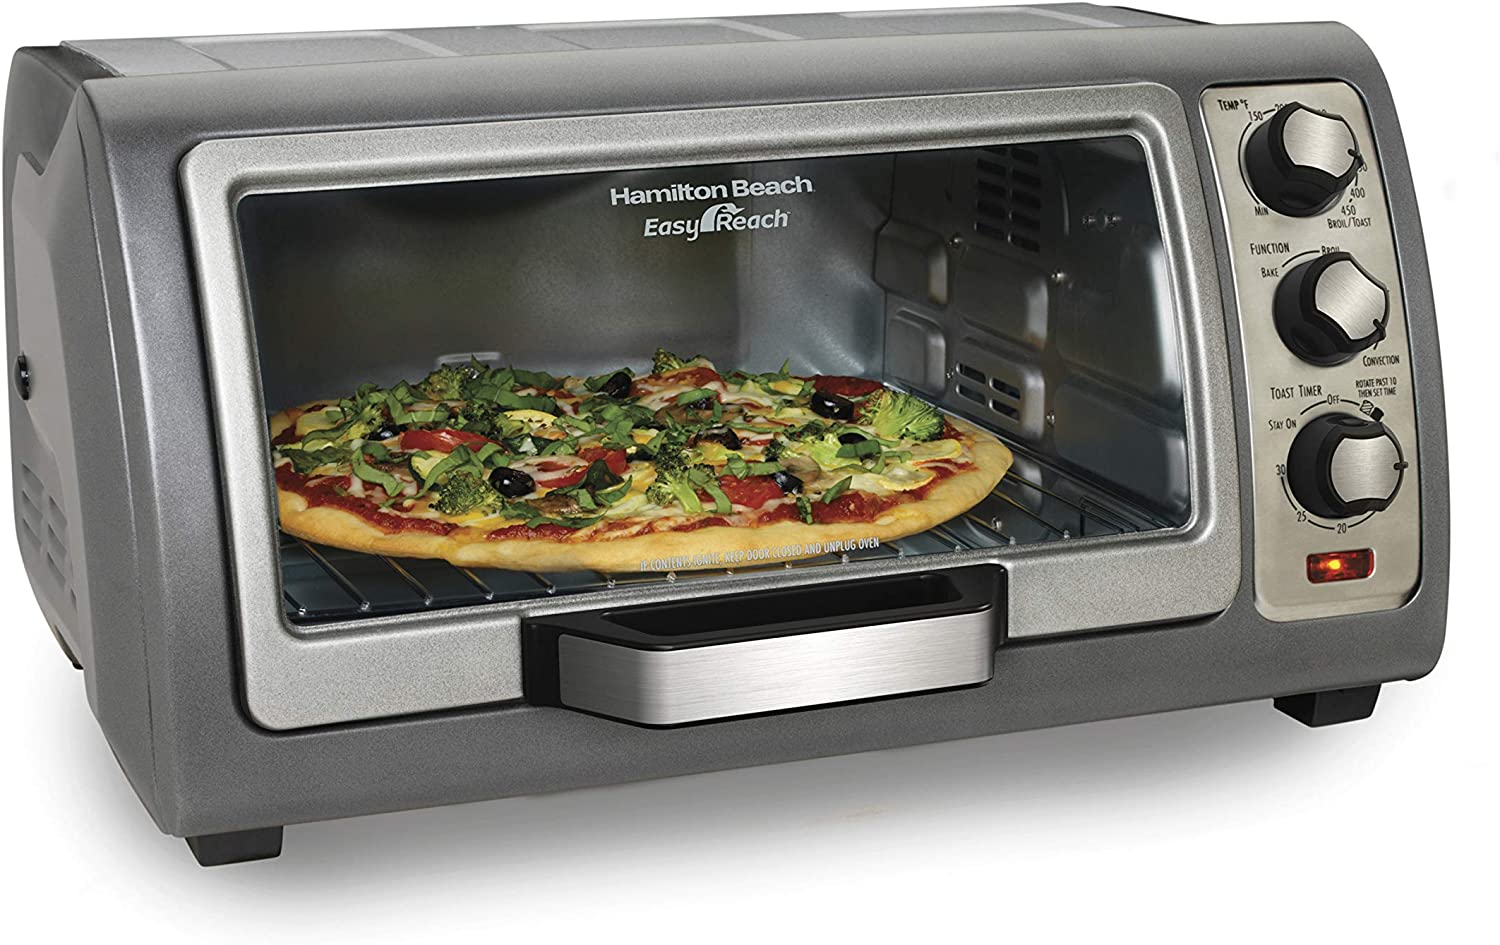 Hamilton Beach 31123D Easy Reach Countertop Convection Toaster Oven